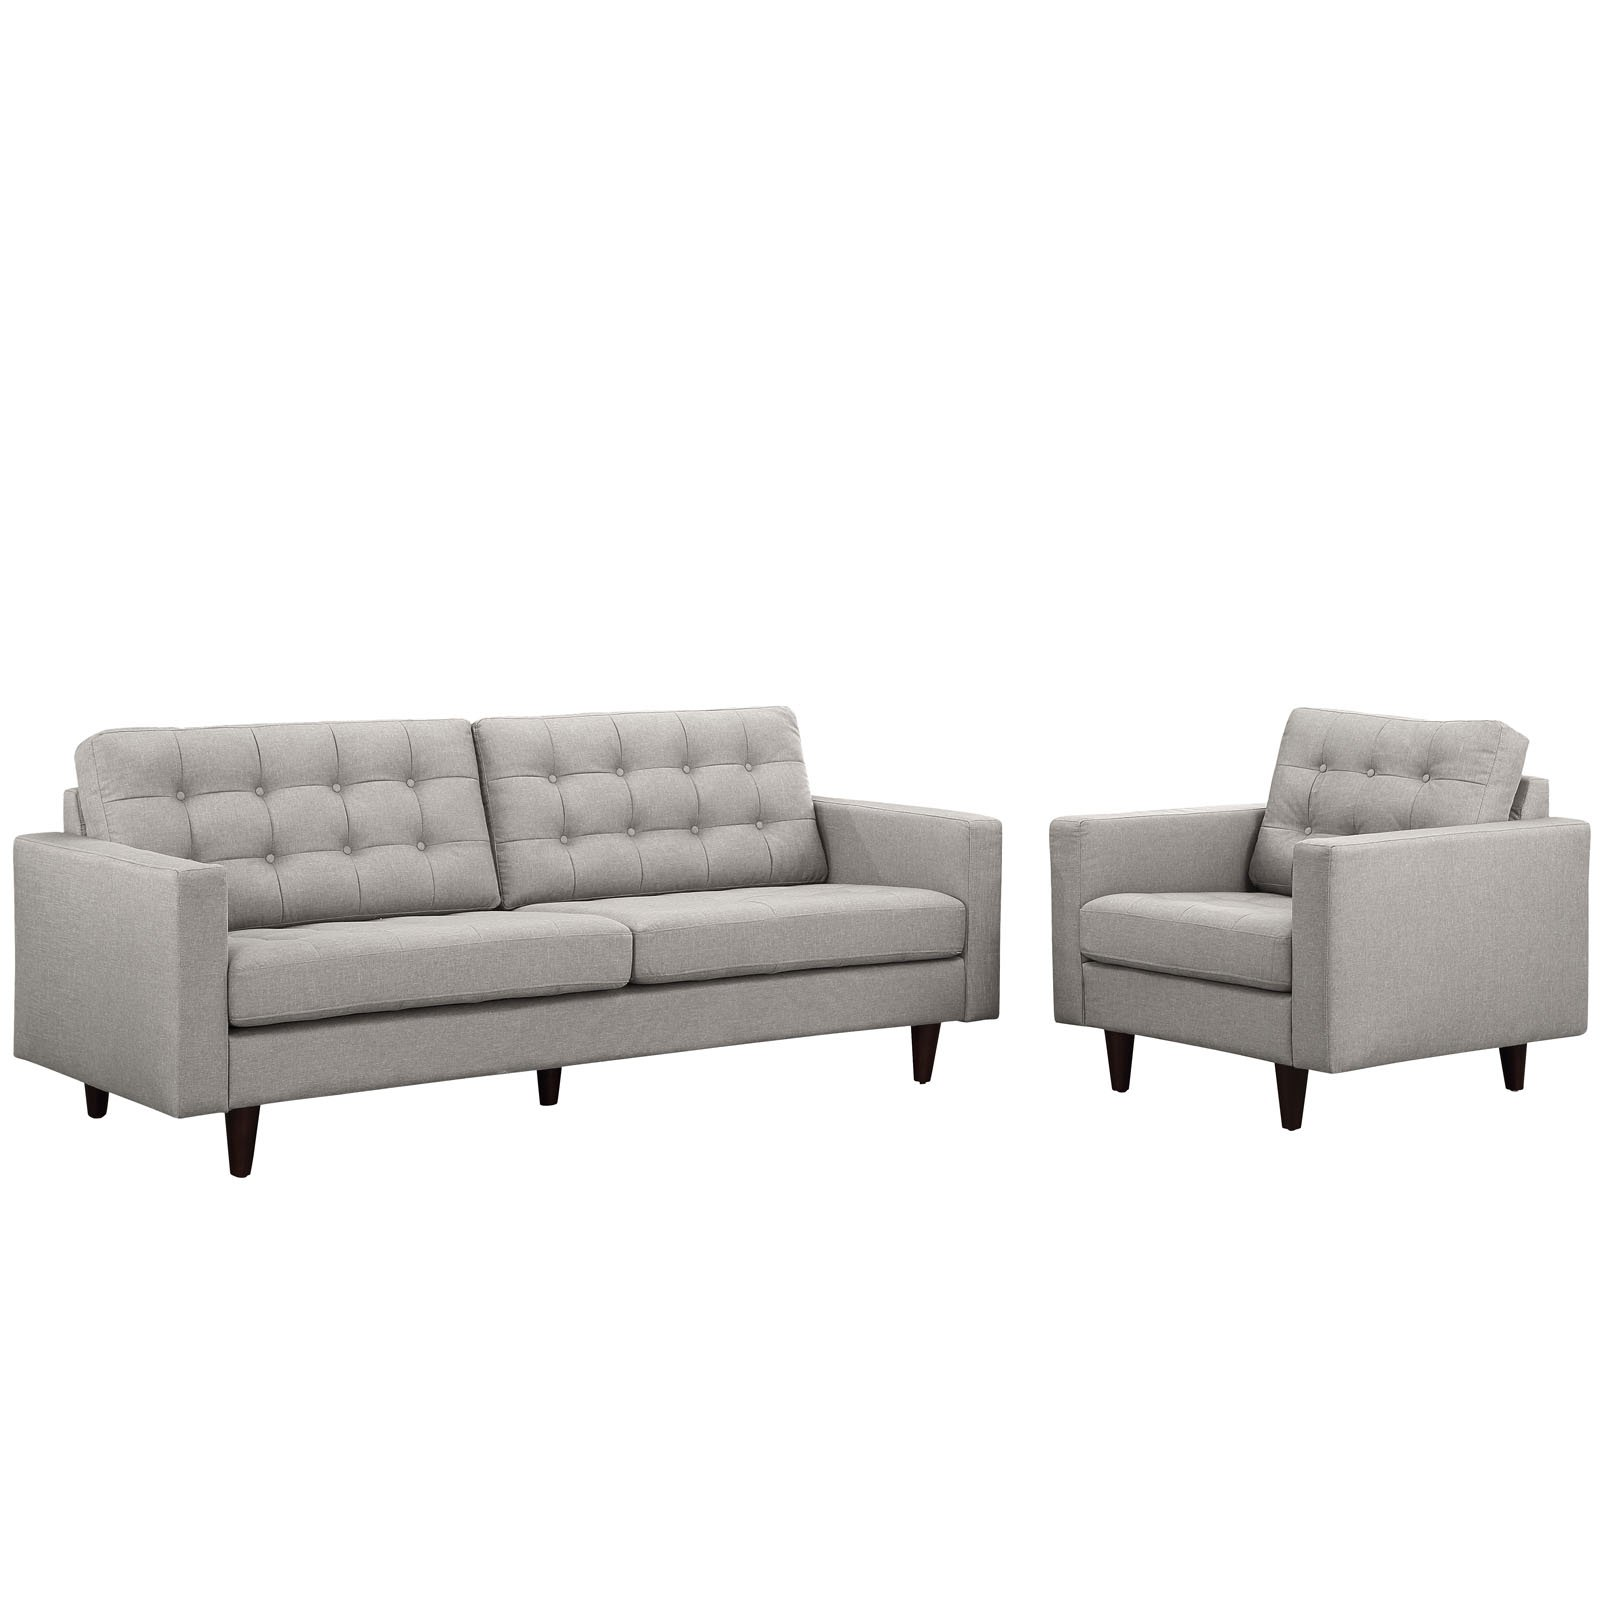 Modway Empress Armchair and Sofa, Set of 2, Multiple Colors